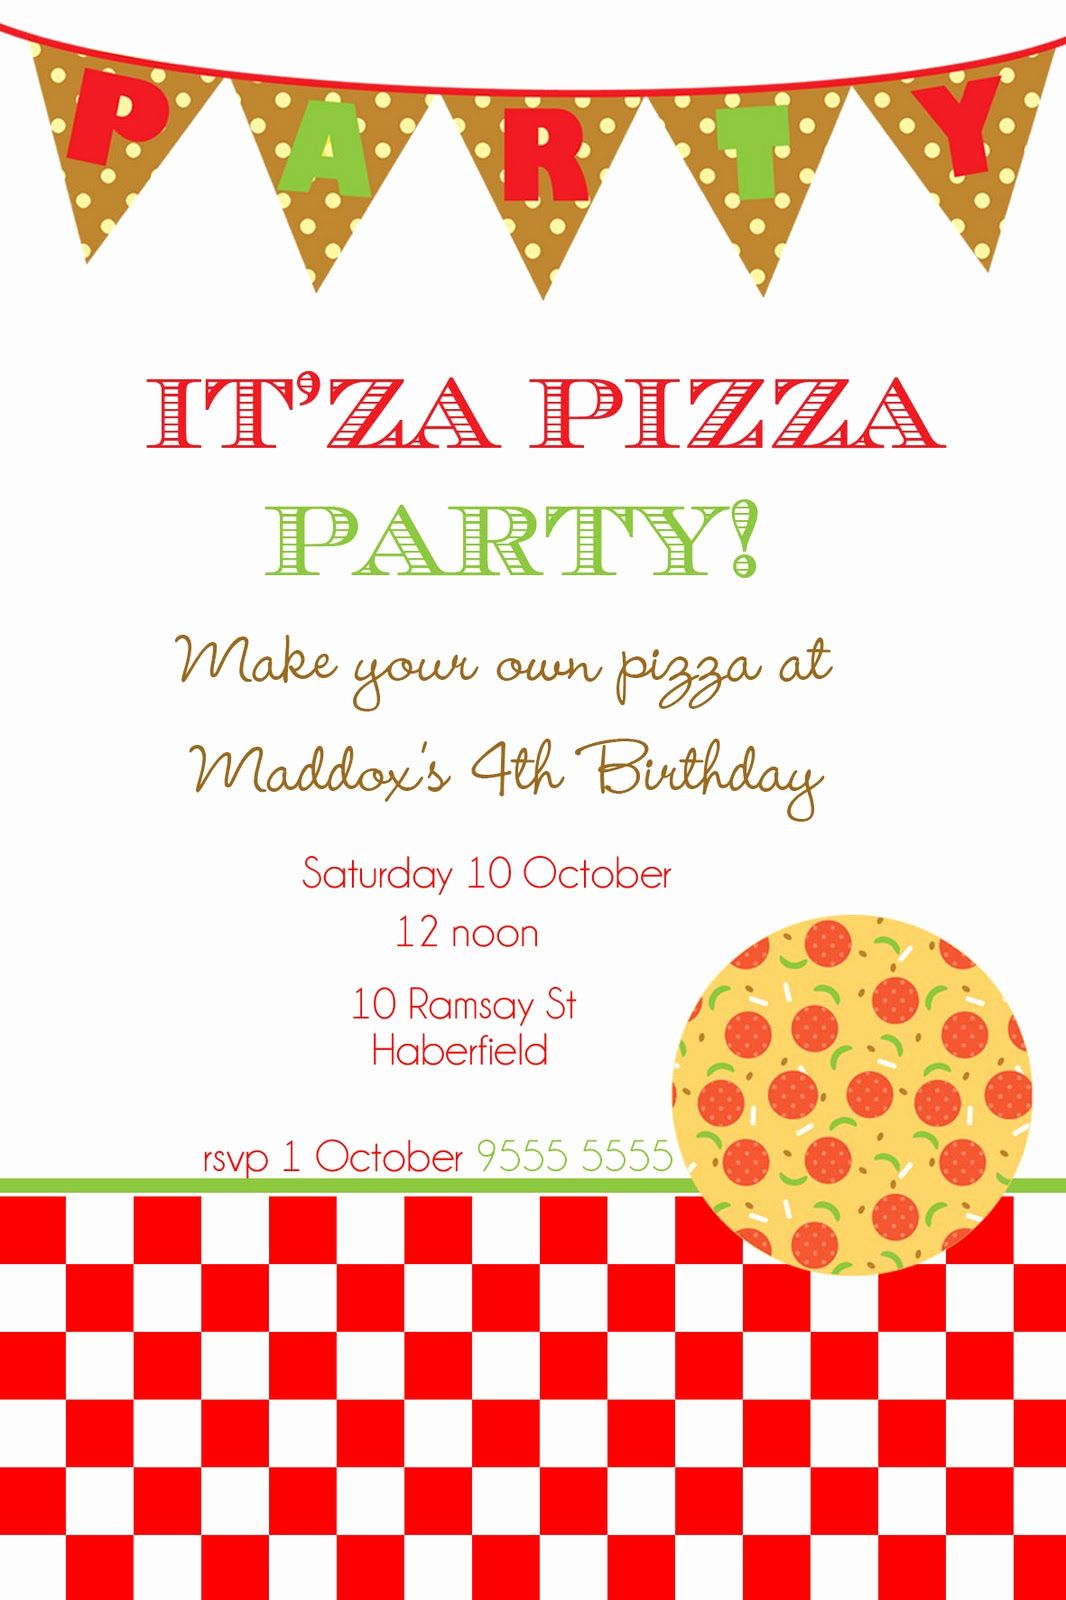 Pizza Party Invitation Template Free Best Of Blank Pizza Party Invitat Party Invite Template Printable Birthday Invitations Free Printable Birthday Invitations